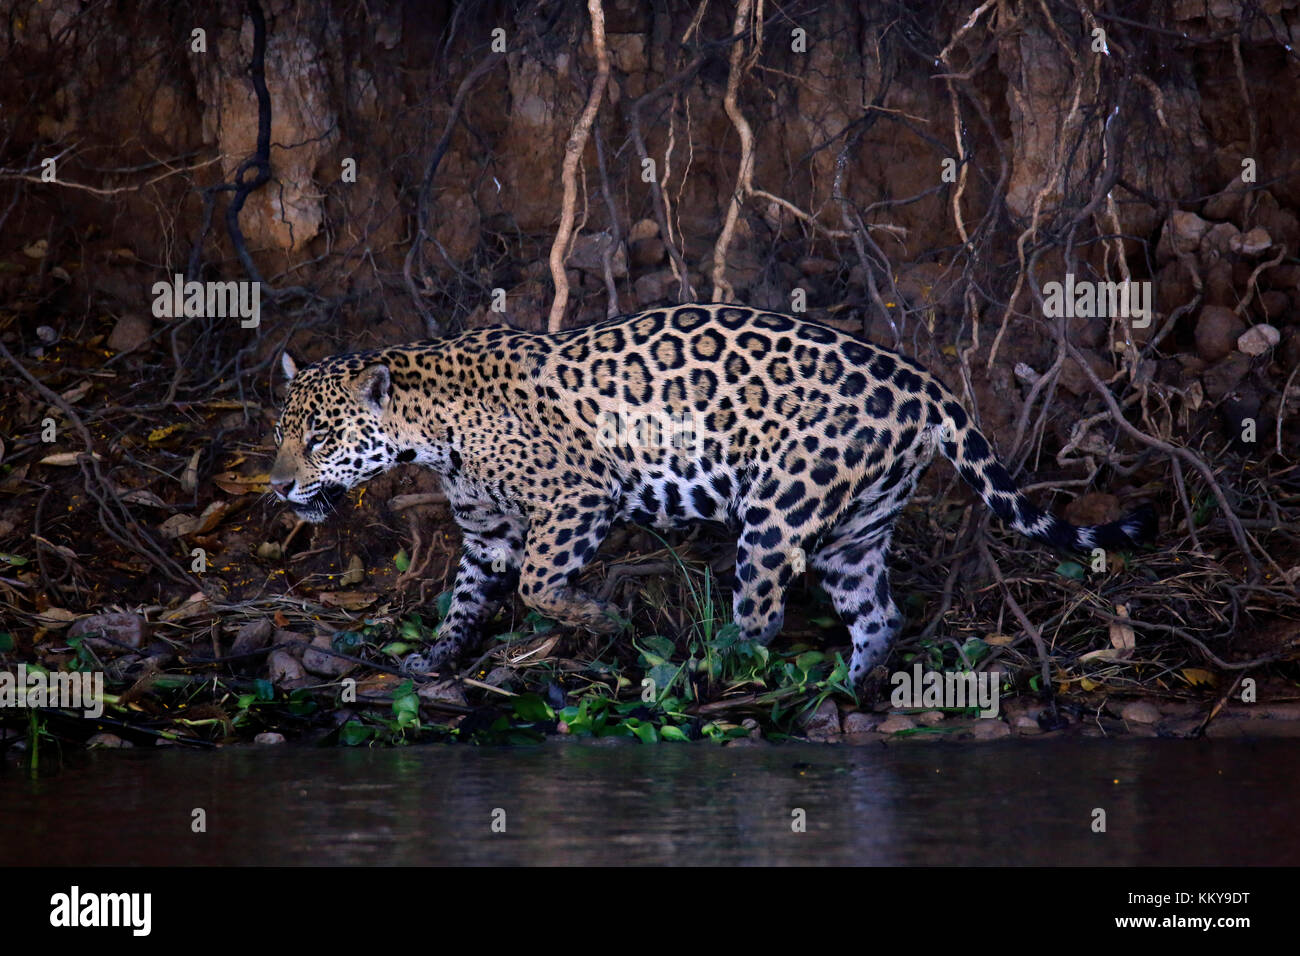 Jaguar Scounting along the River Bank, Pantanal, Brazil - Stock Image